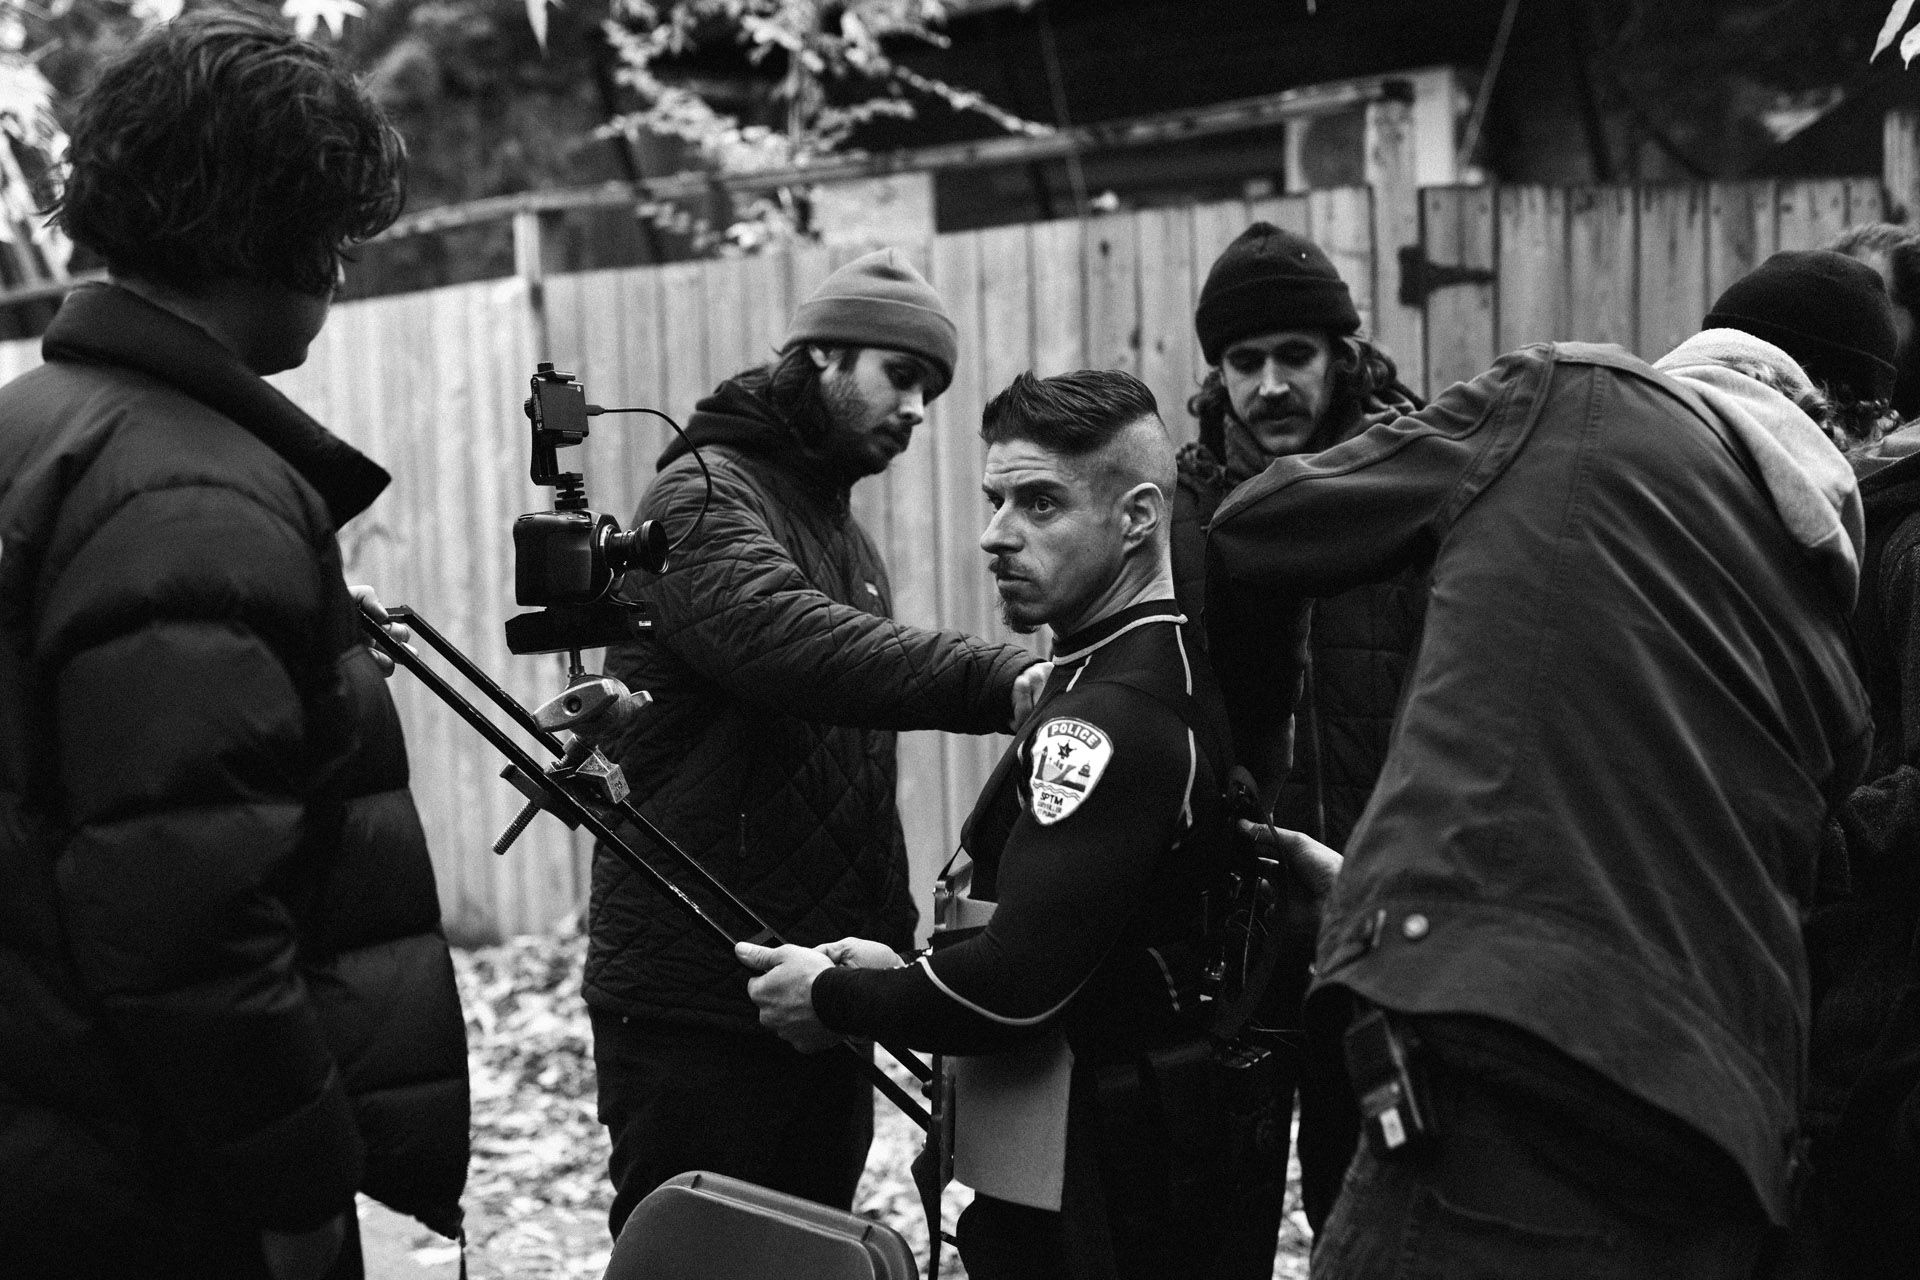 actor Hugolin Chevrette-Landesque dressed as cop getting camera harnessed on him by shooting team in behind the scenes of TV series La Loi C'est La Loi filmed by Les Gamins for TV5 Unis